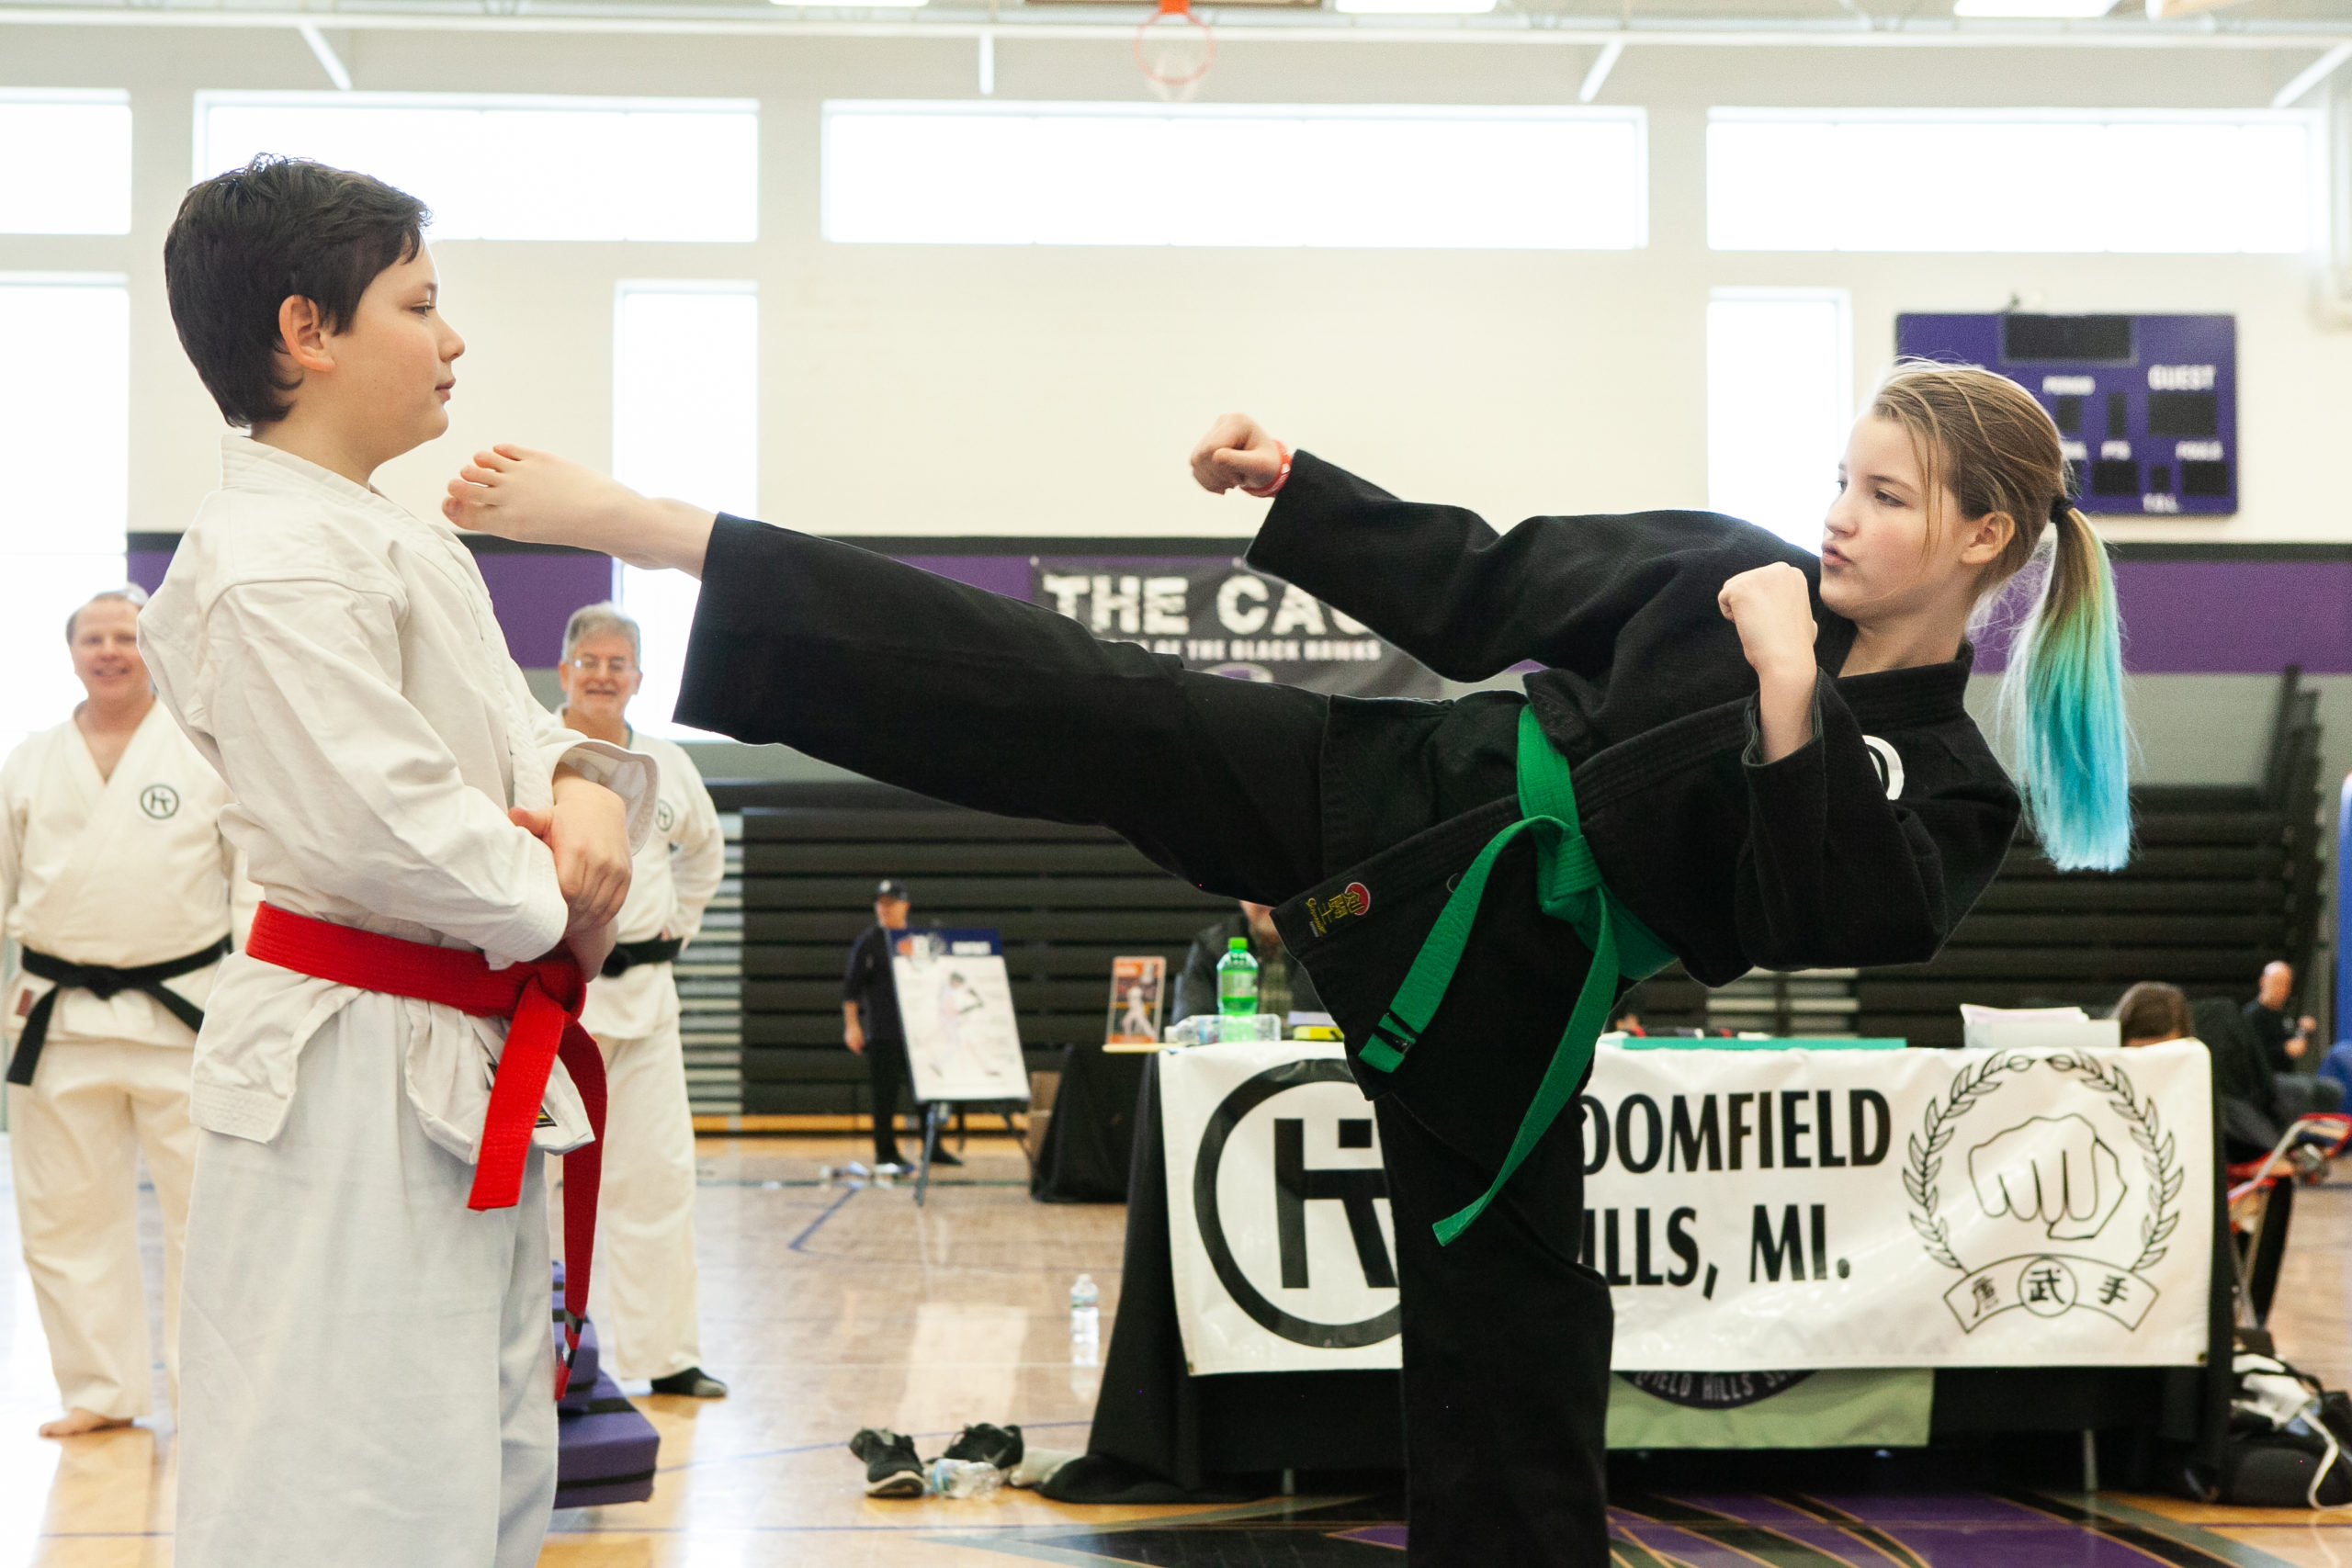 Karate camp demonstration at Camp Expo 2019.